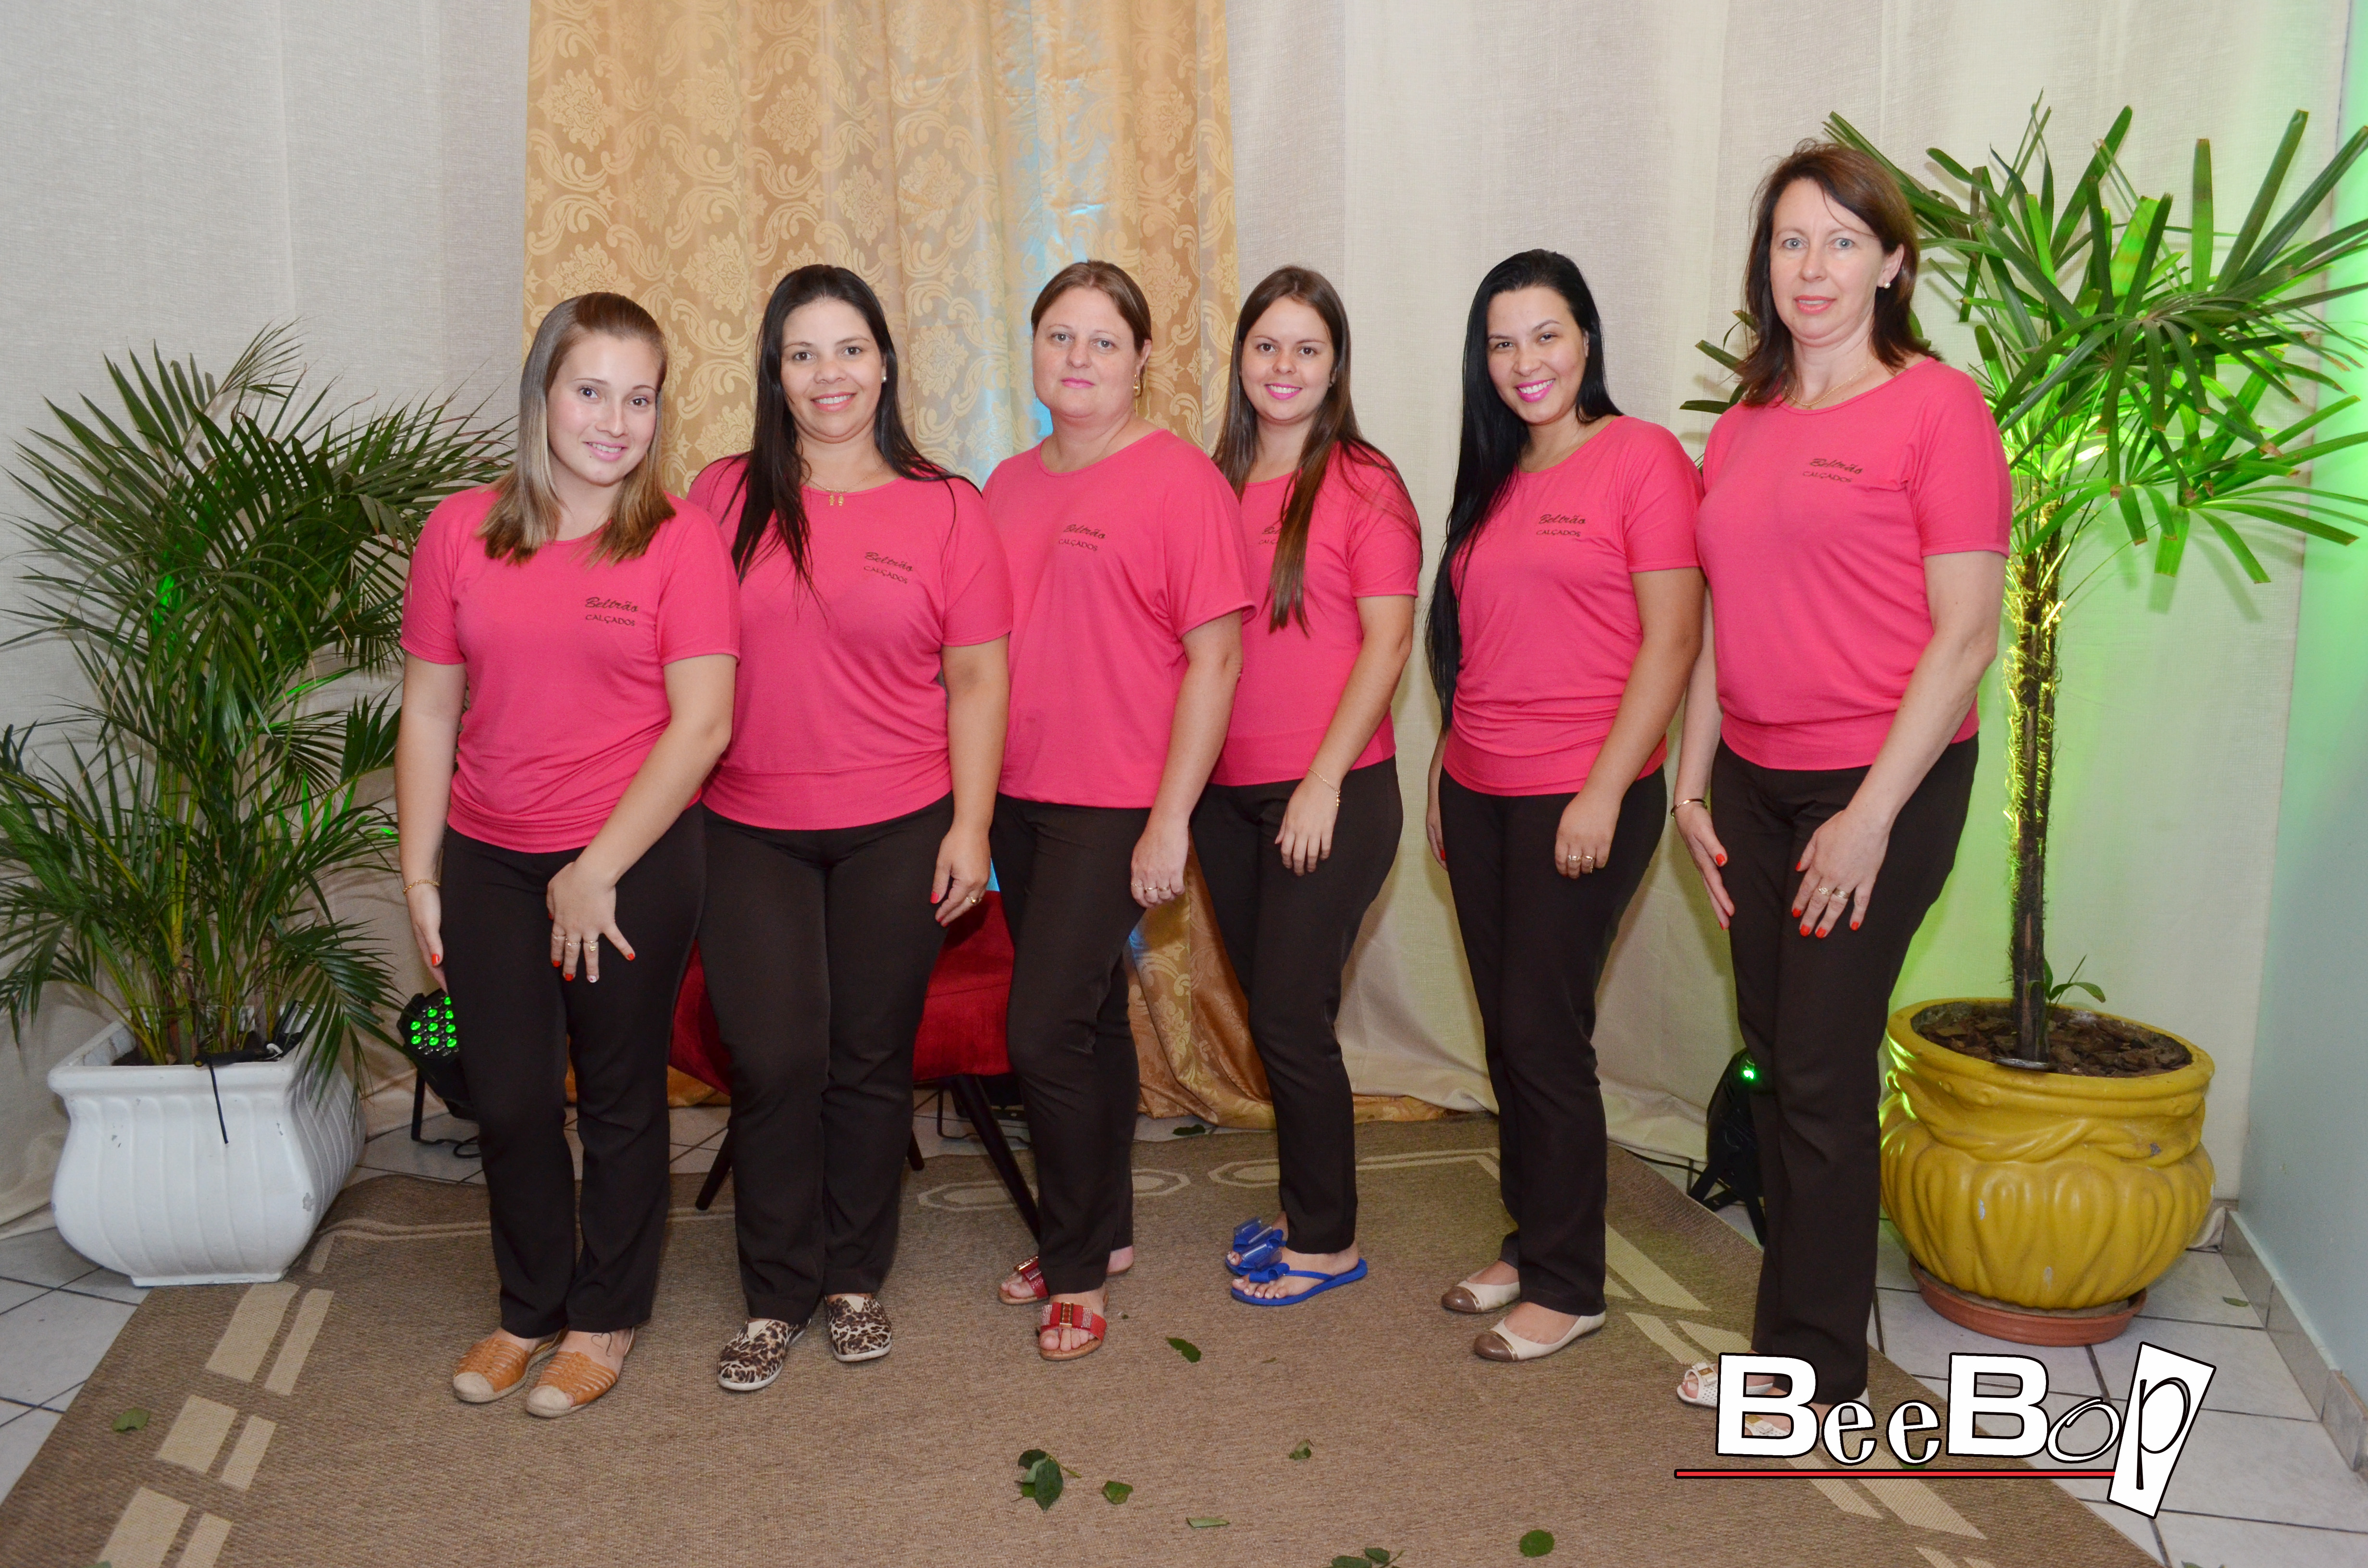 Equipe joia!